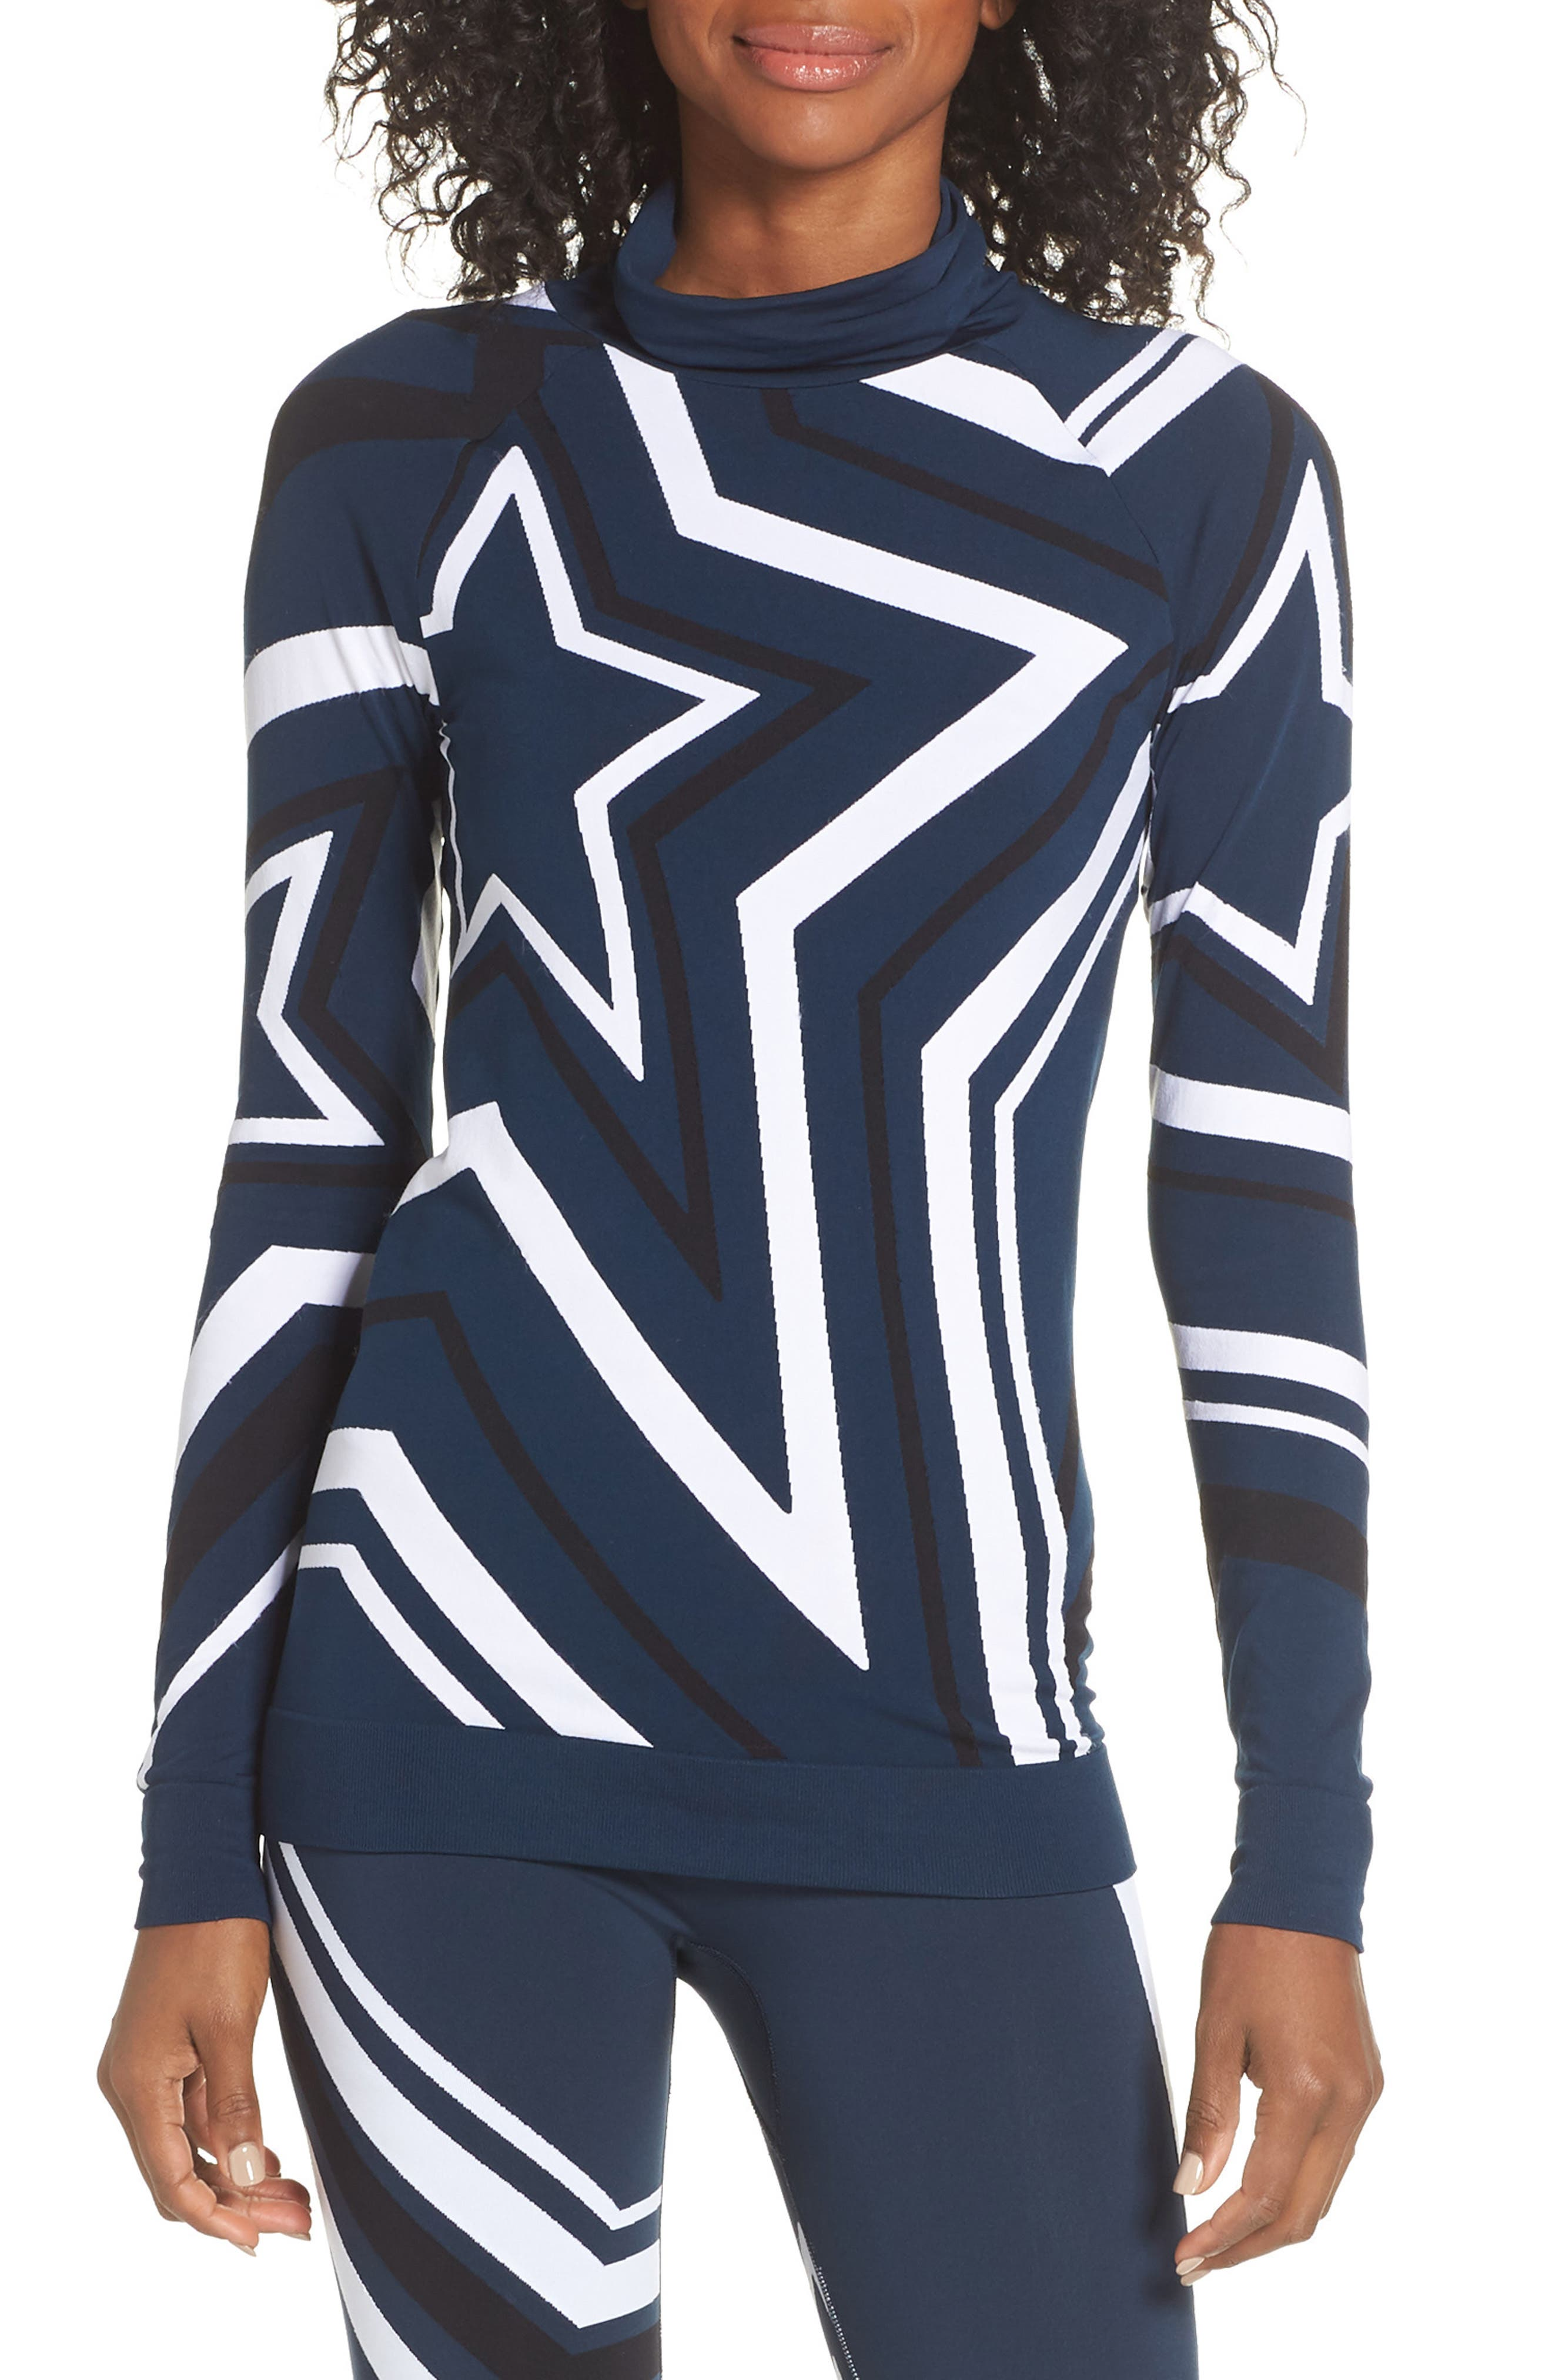 Festive Star Seamless Base Layer Top,                             Main thumbnail 1, color,                             BEETLE BLUE STAR JACQUARD